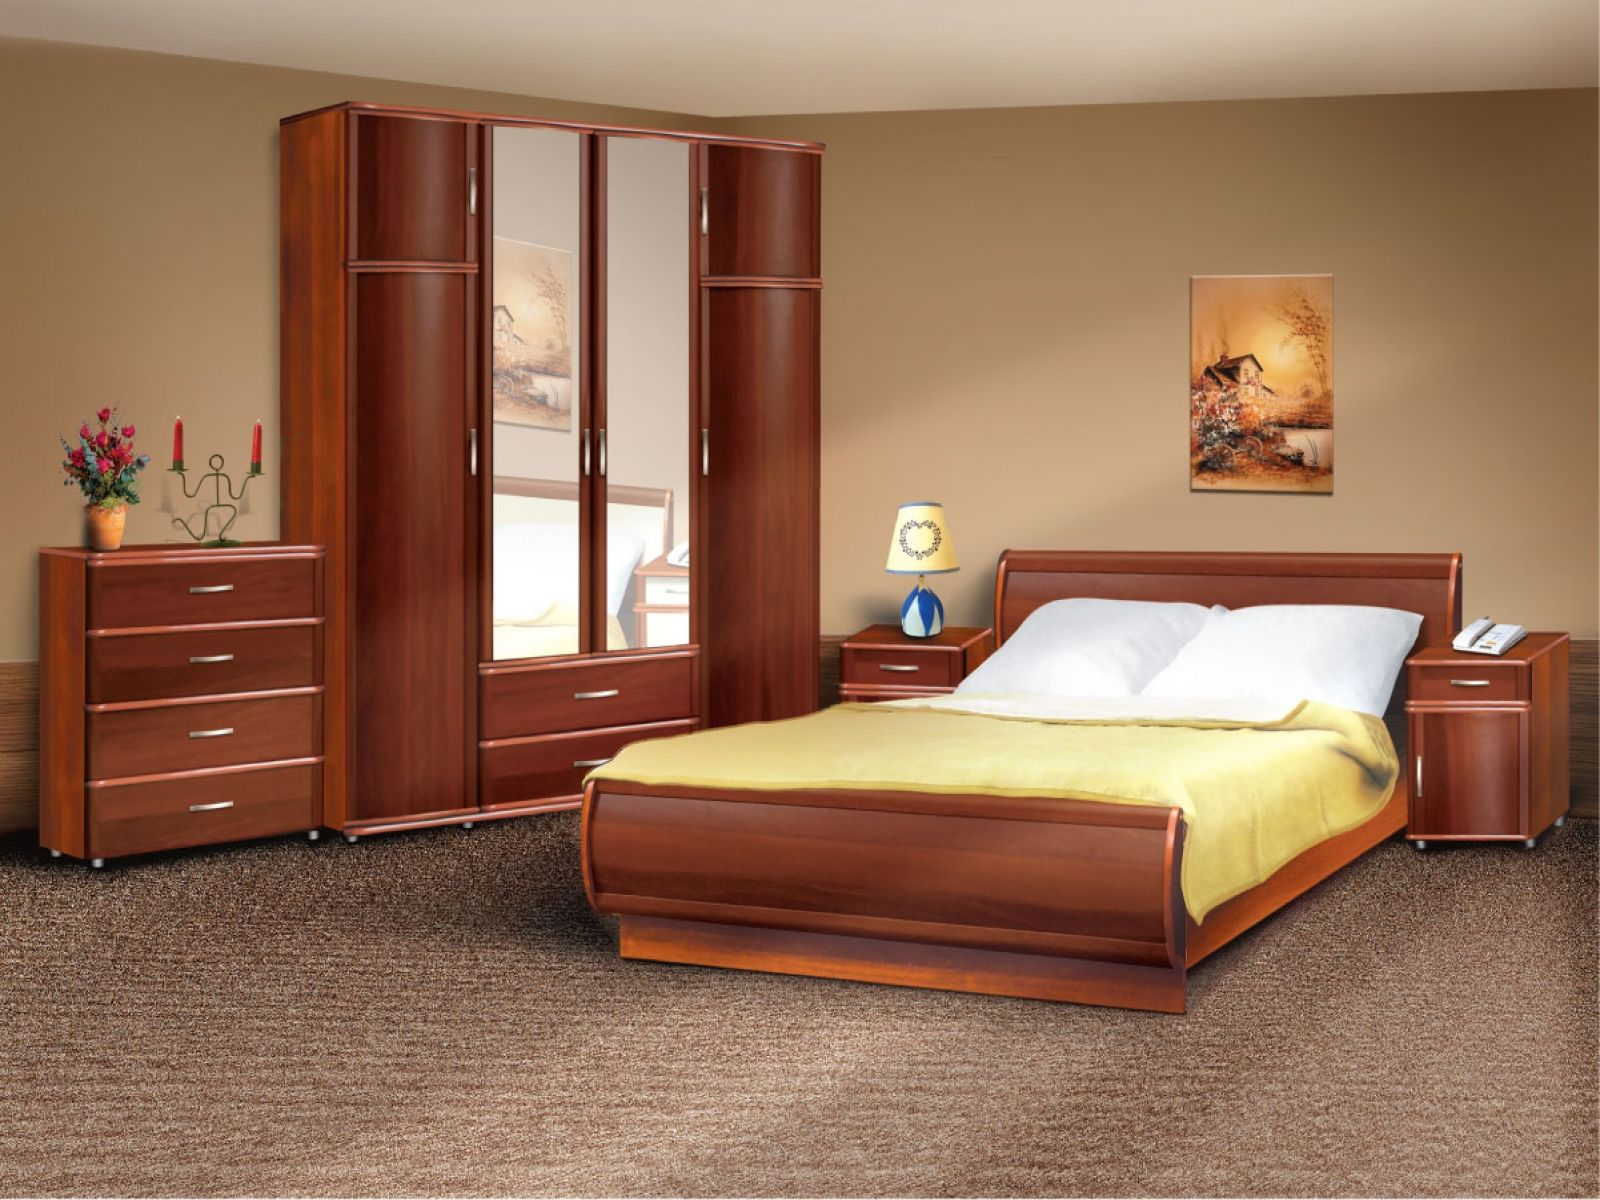 In vogue arc wooden headboard king size bed and double for Bedroom size